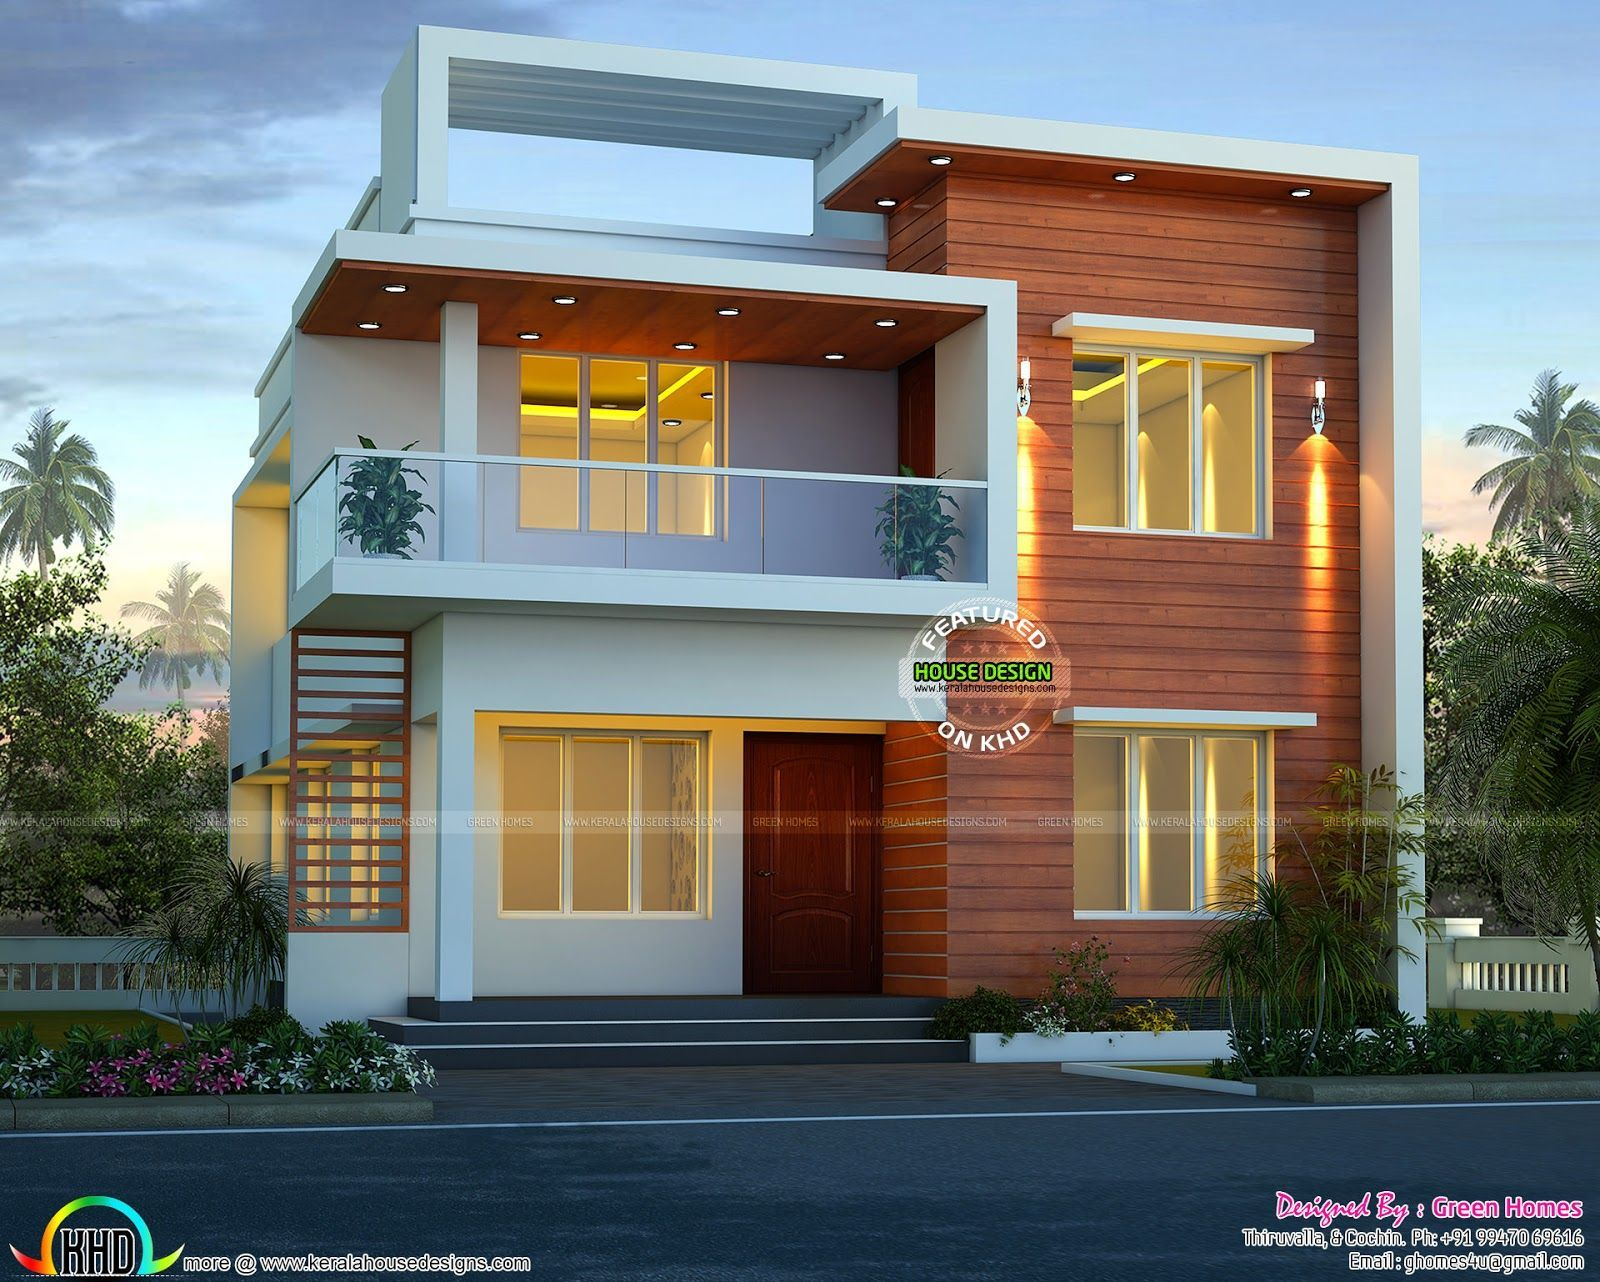 2384a1c41db2513326005d8517b82172 - 19+ Modern Small House Front Elevation Designs PNG